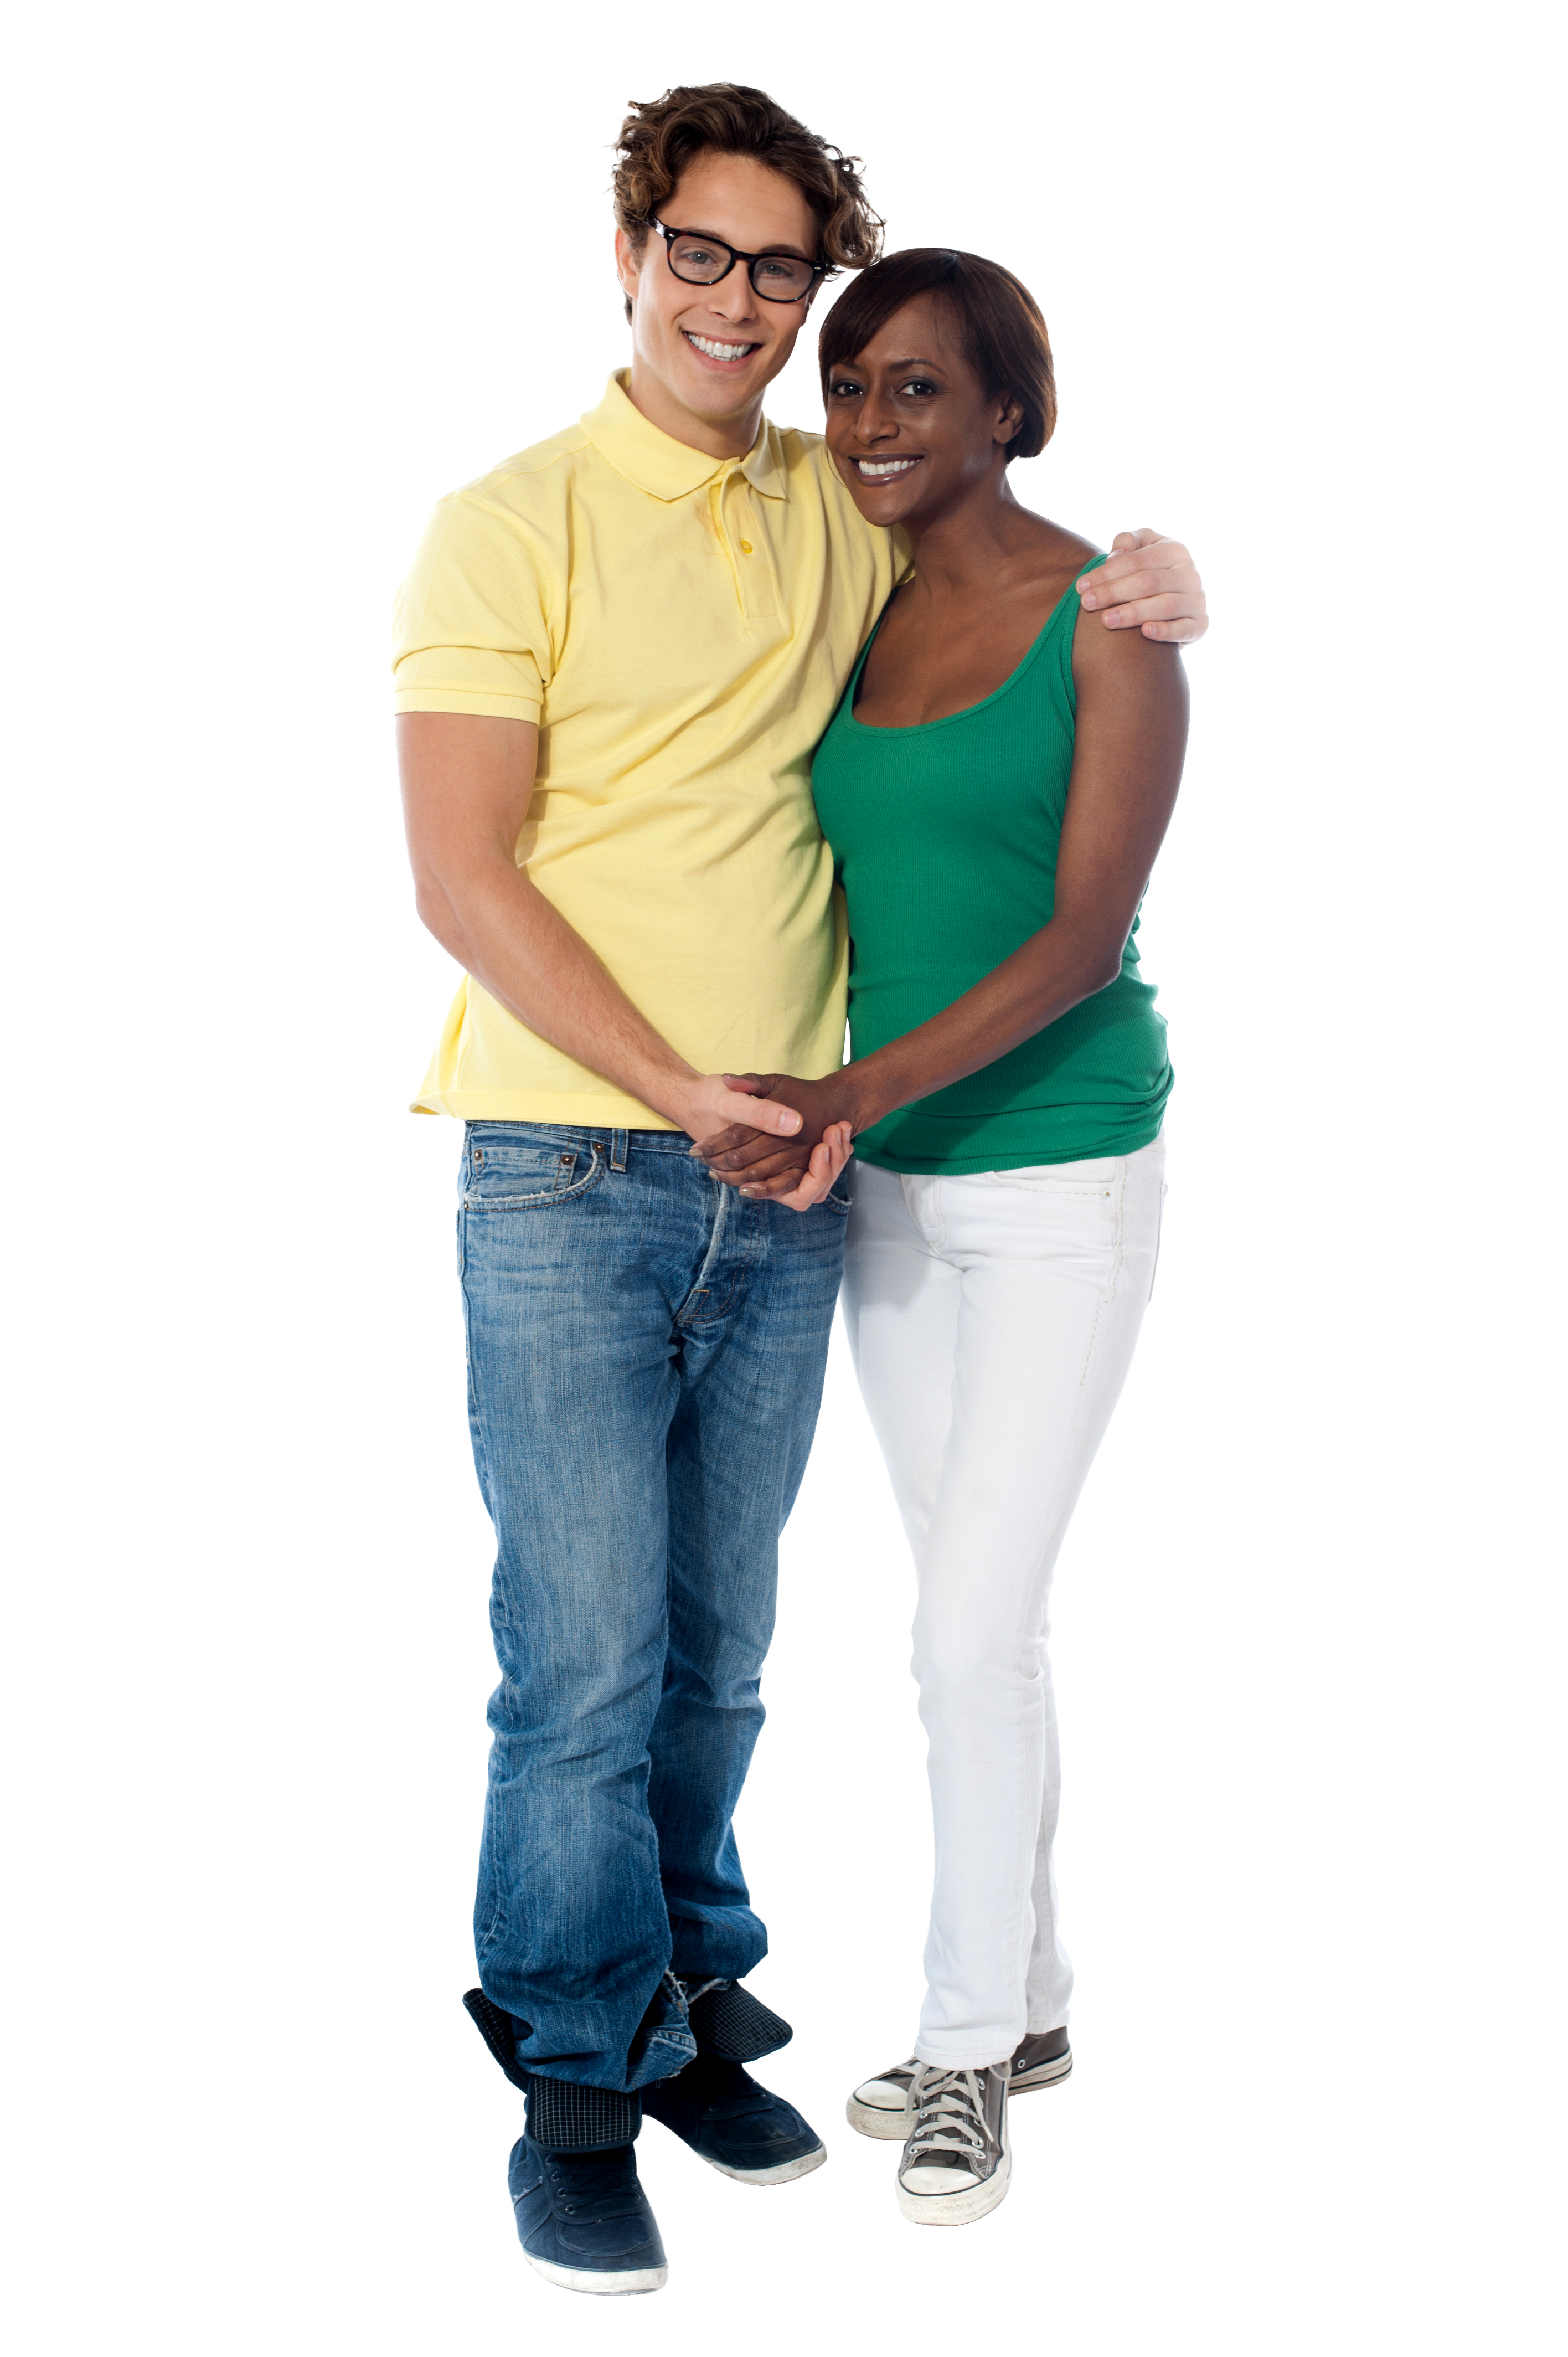 Happy couple png. Image purepng free transparent